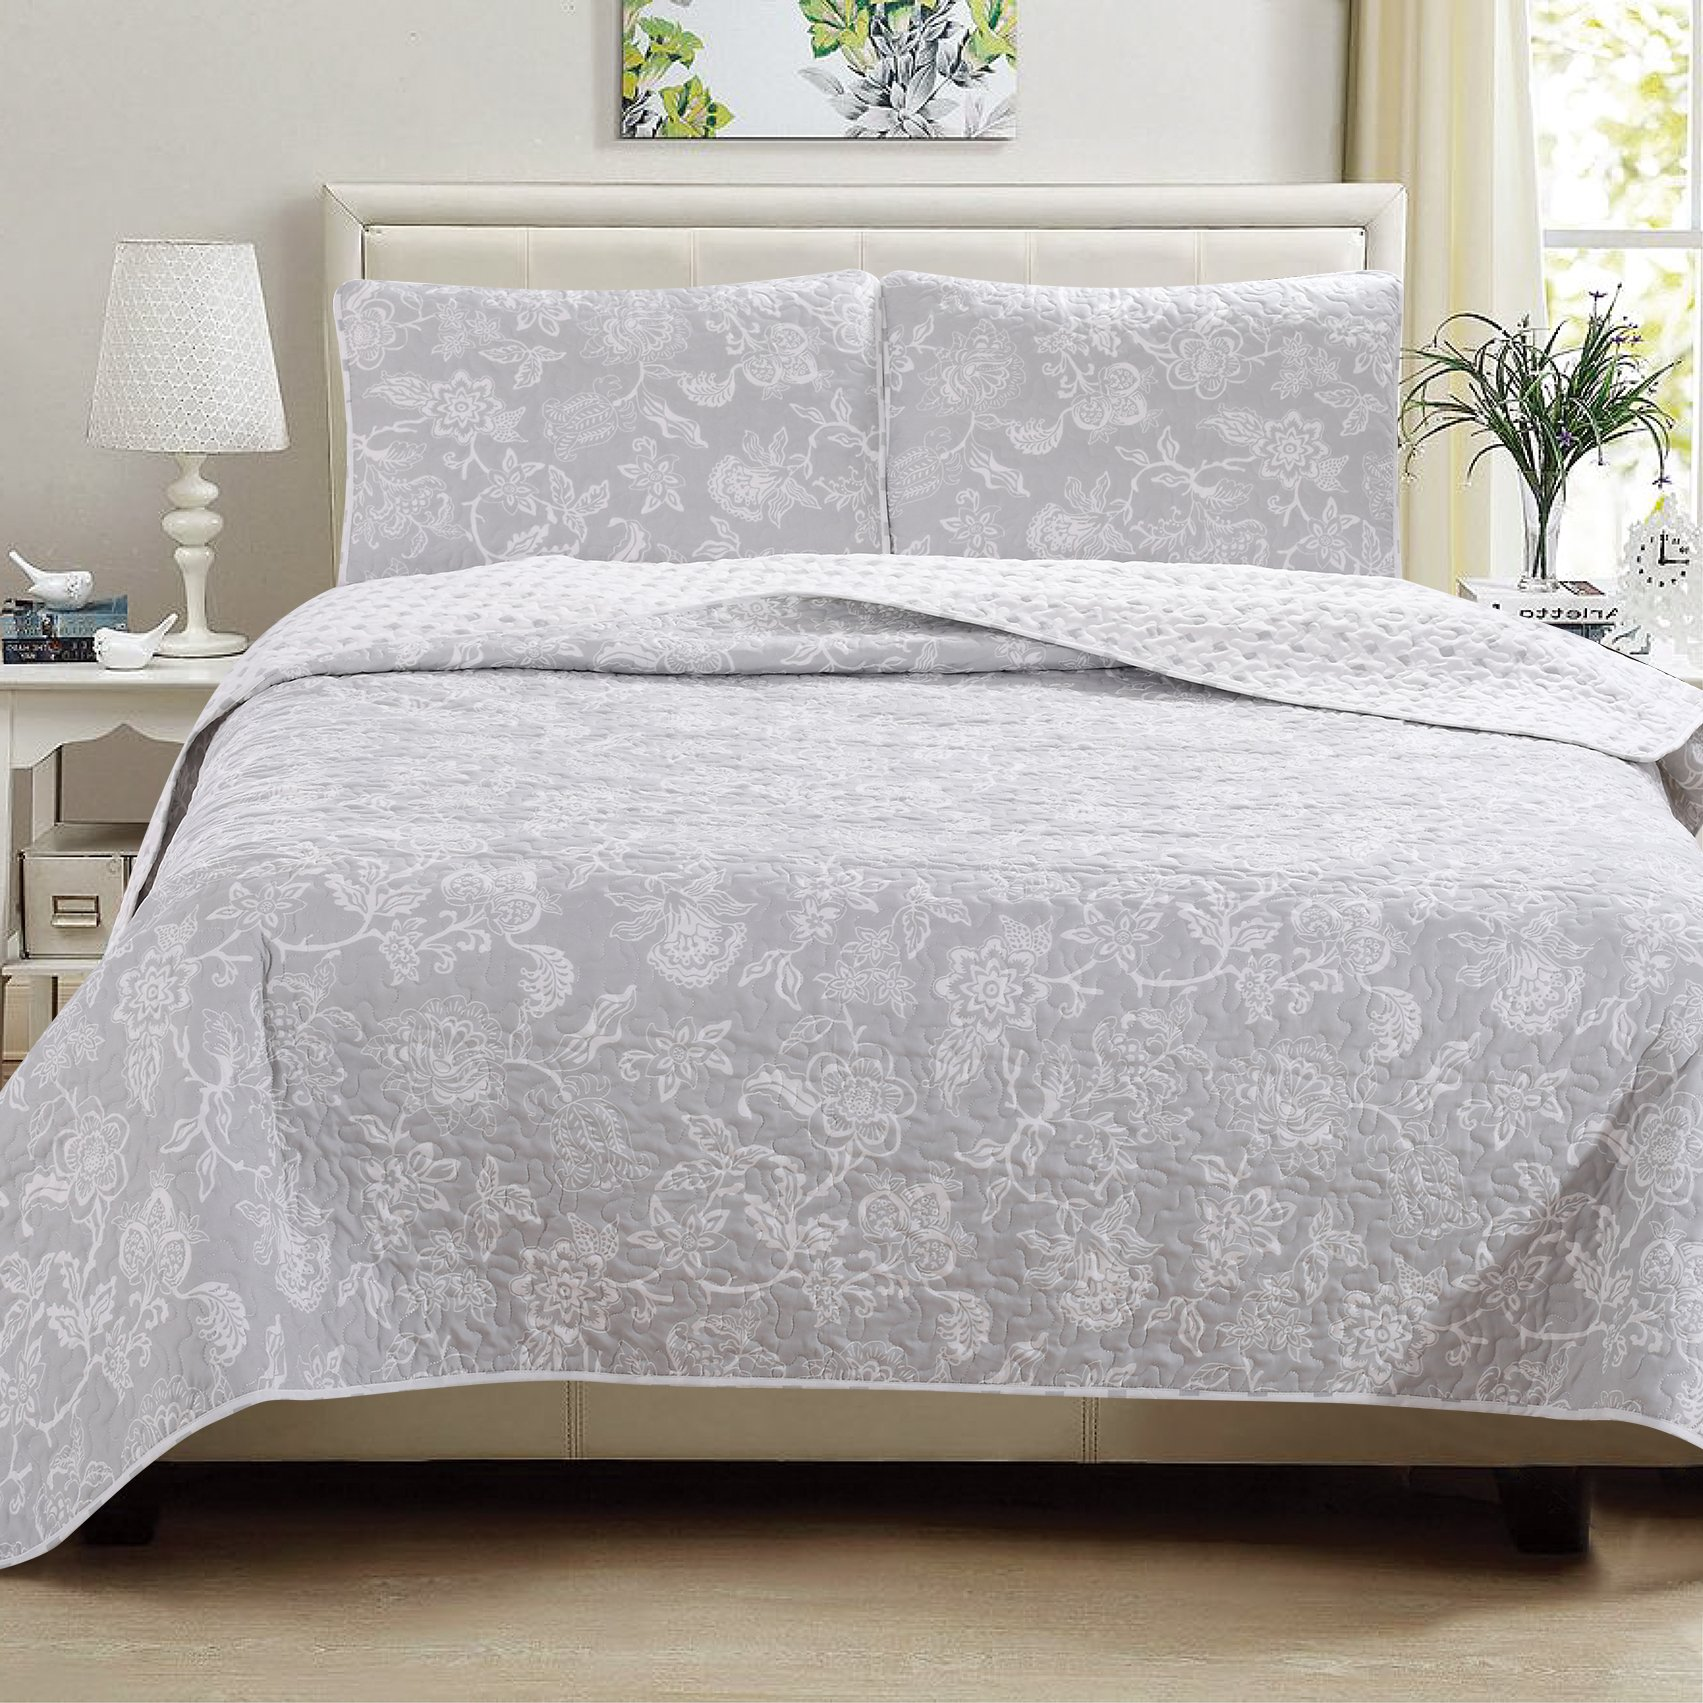 Great Bay Home 3-Piece Reversible Quilt Set with Shams. All-Season Bedspread with Floral Print Pattern in Contemporary Colors. Emma Collection By Brand. (King, Grey) by Great Bay Home (Image #3)